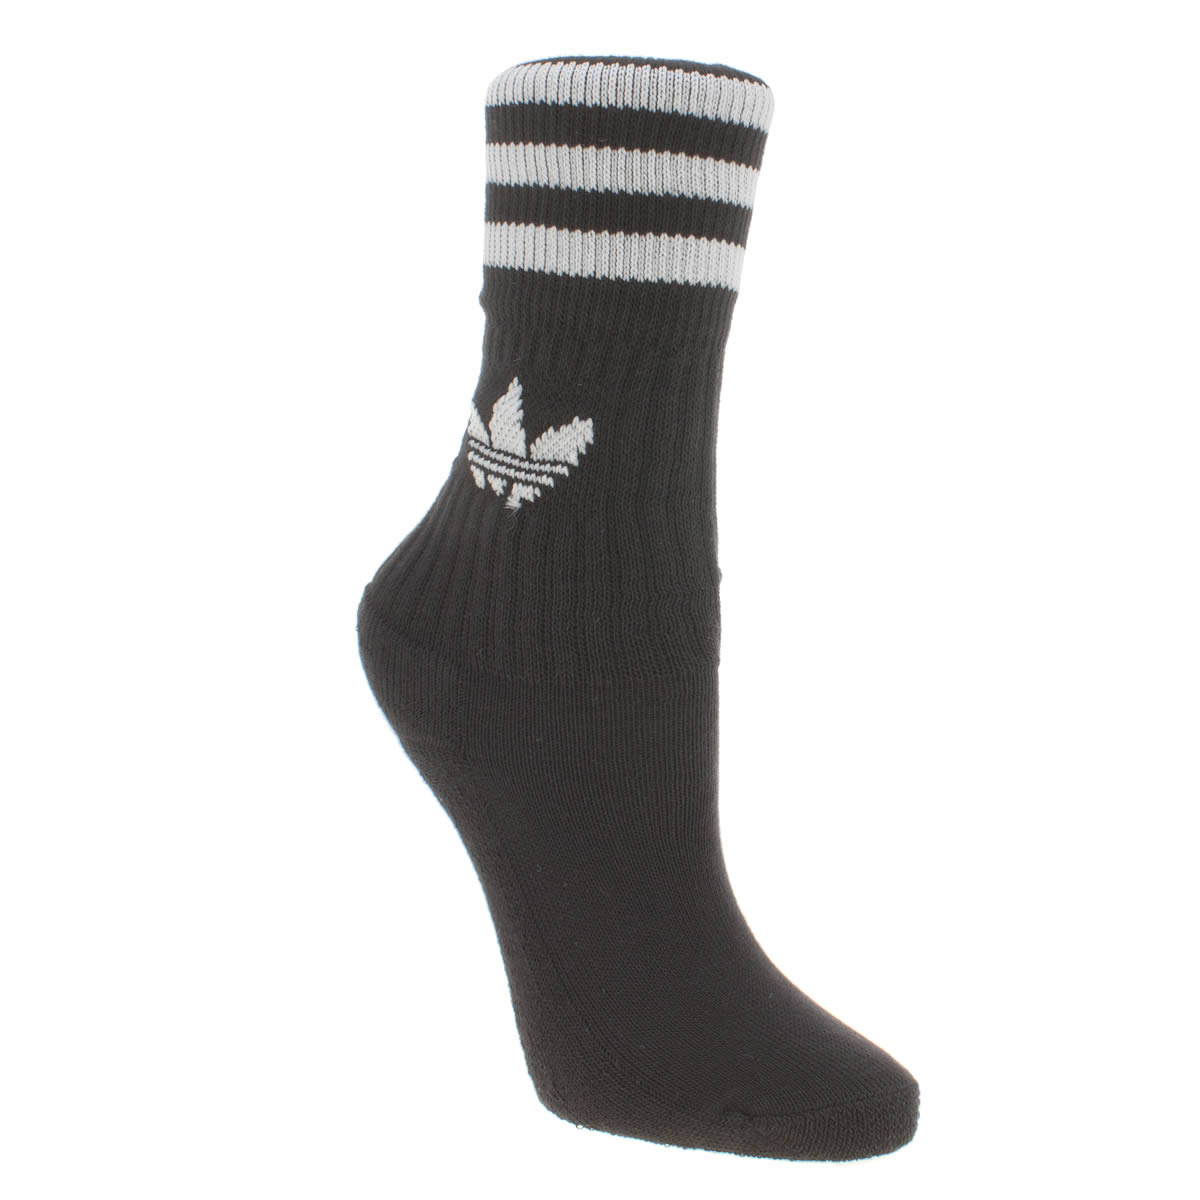 Photo of Adidas black & white kids solid crew 3 pack socks